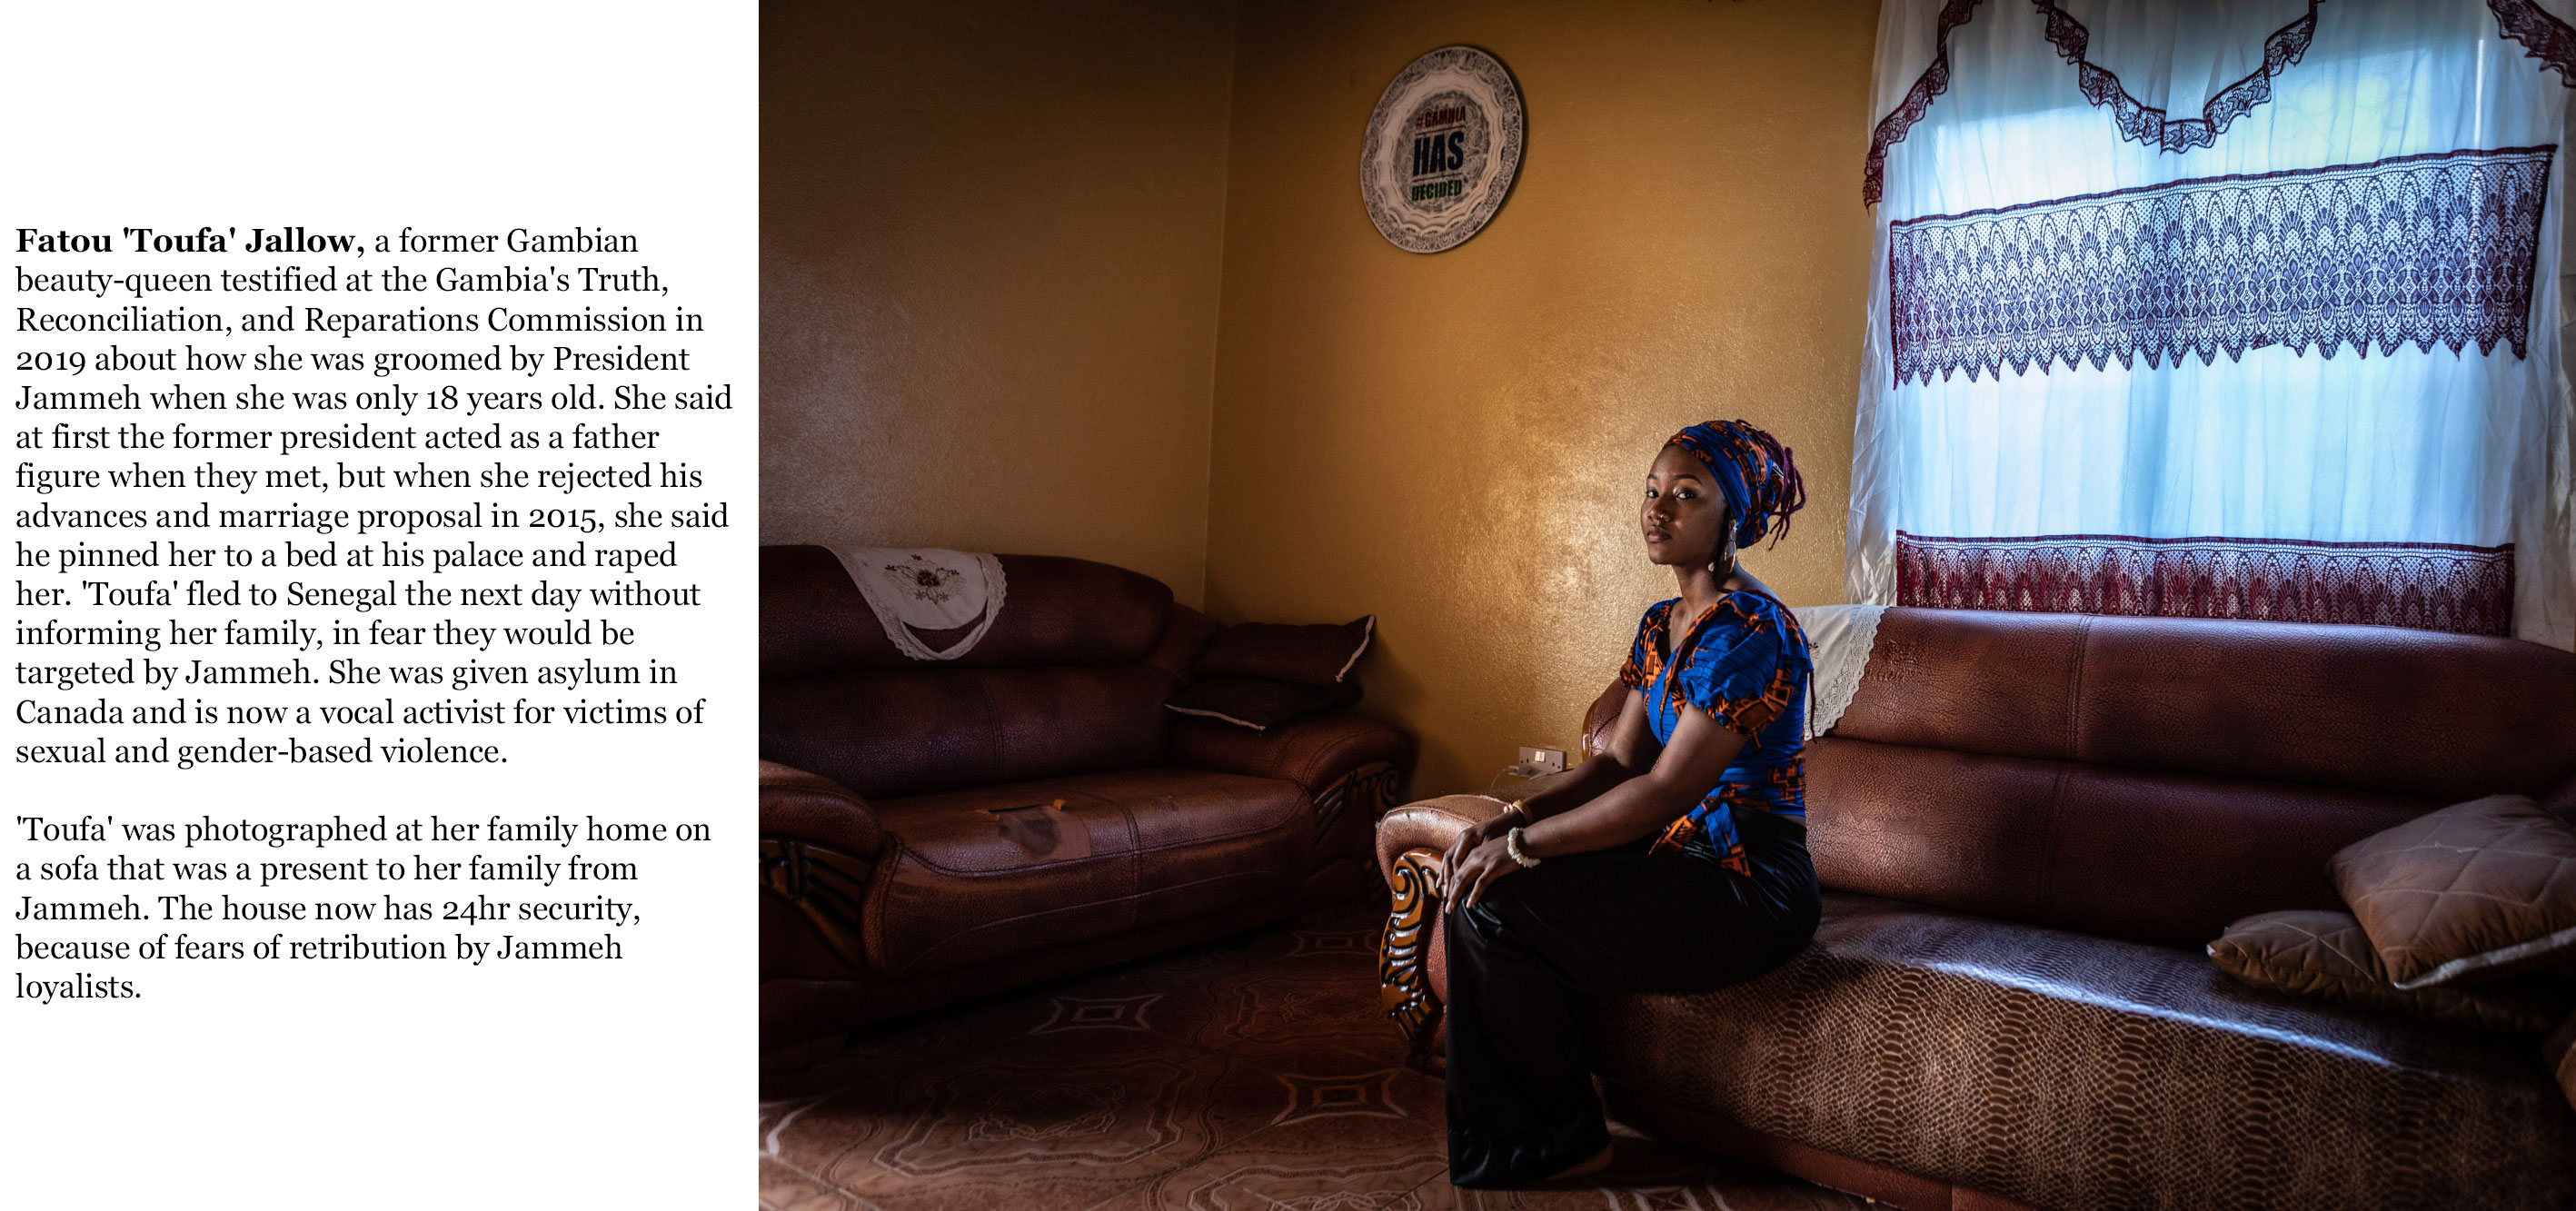 Gambia victims and resisters - rape victim fatou_toufa_jallow-8613_TEXT_WEB ©Jason Florio